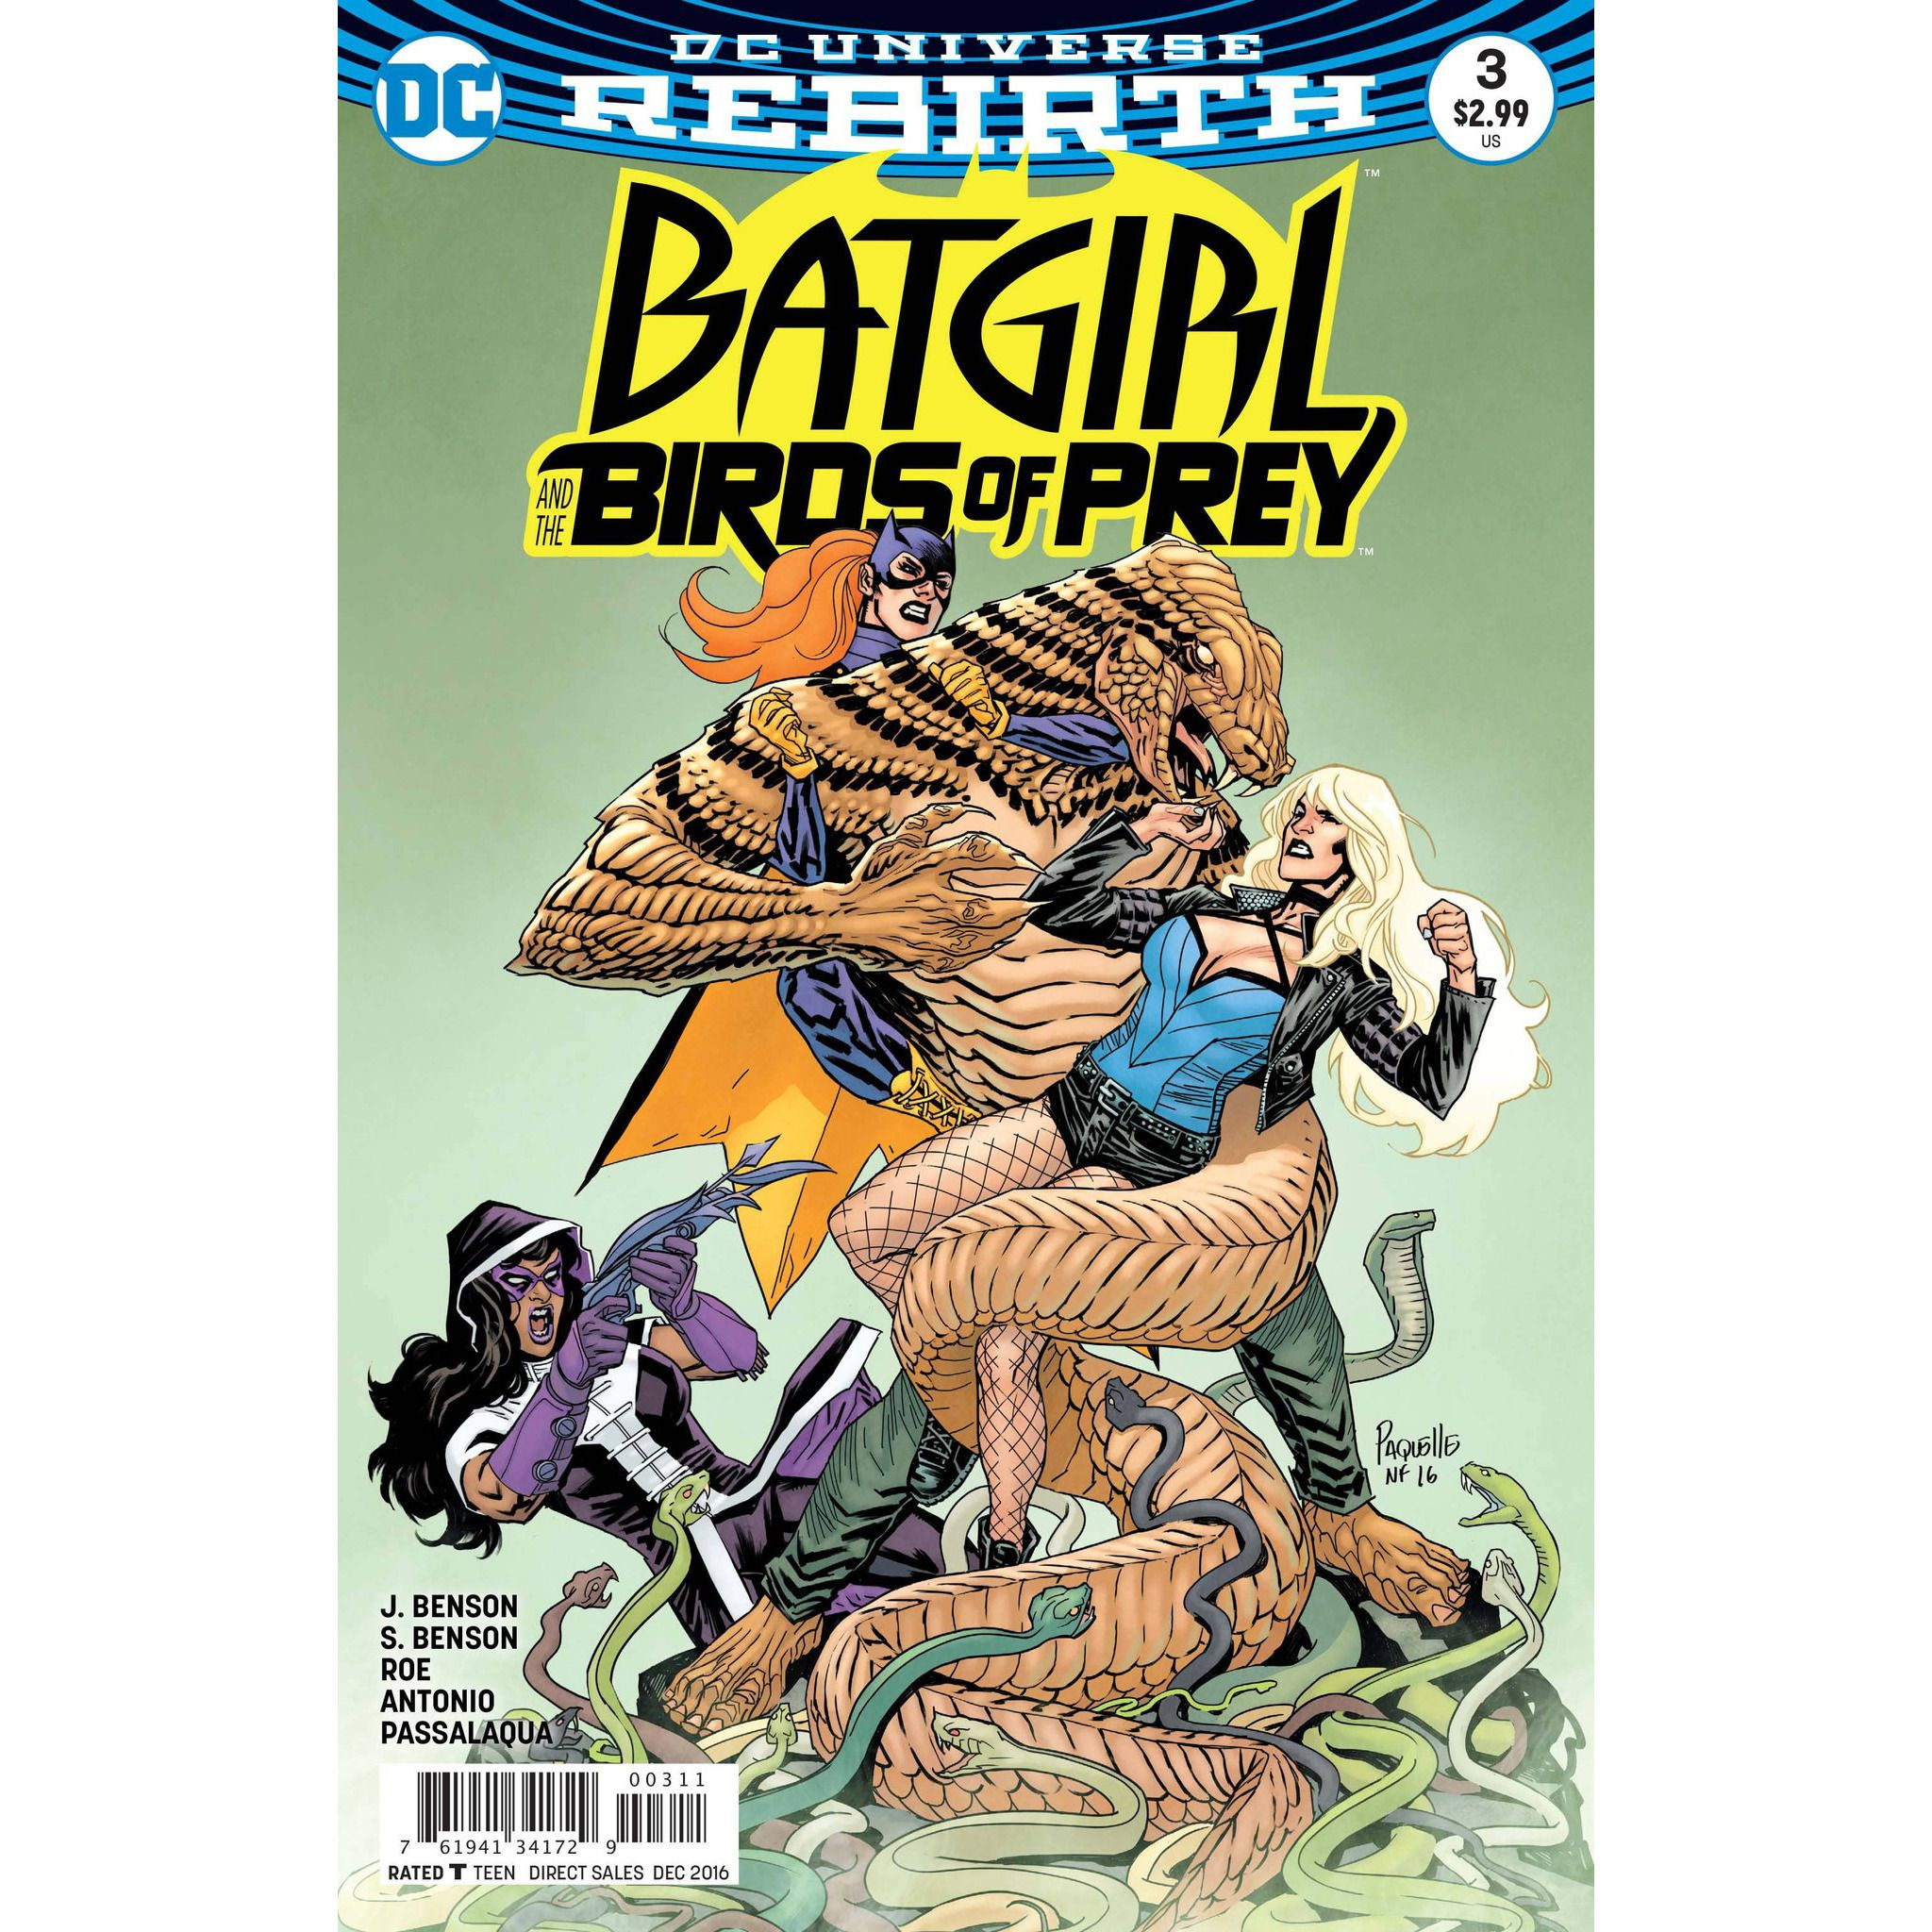 Batgirl And The Birds Of Prey #3 Uncanny!